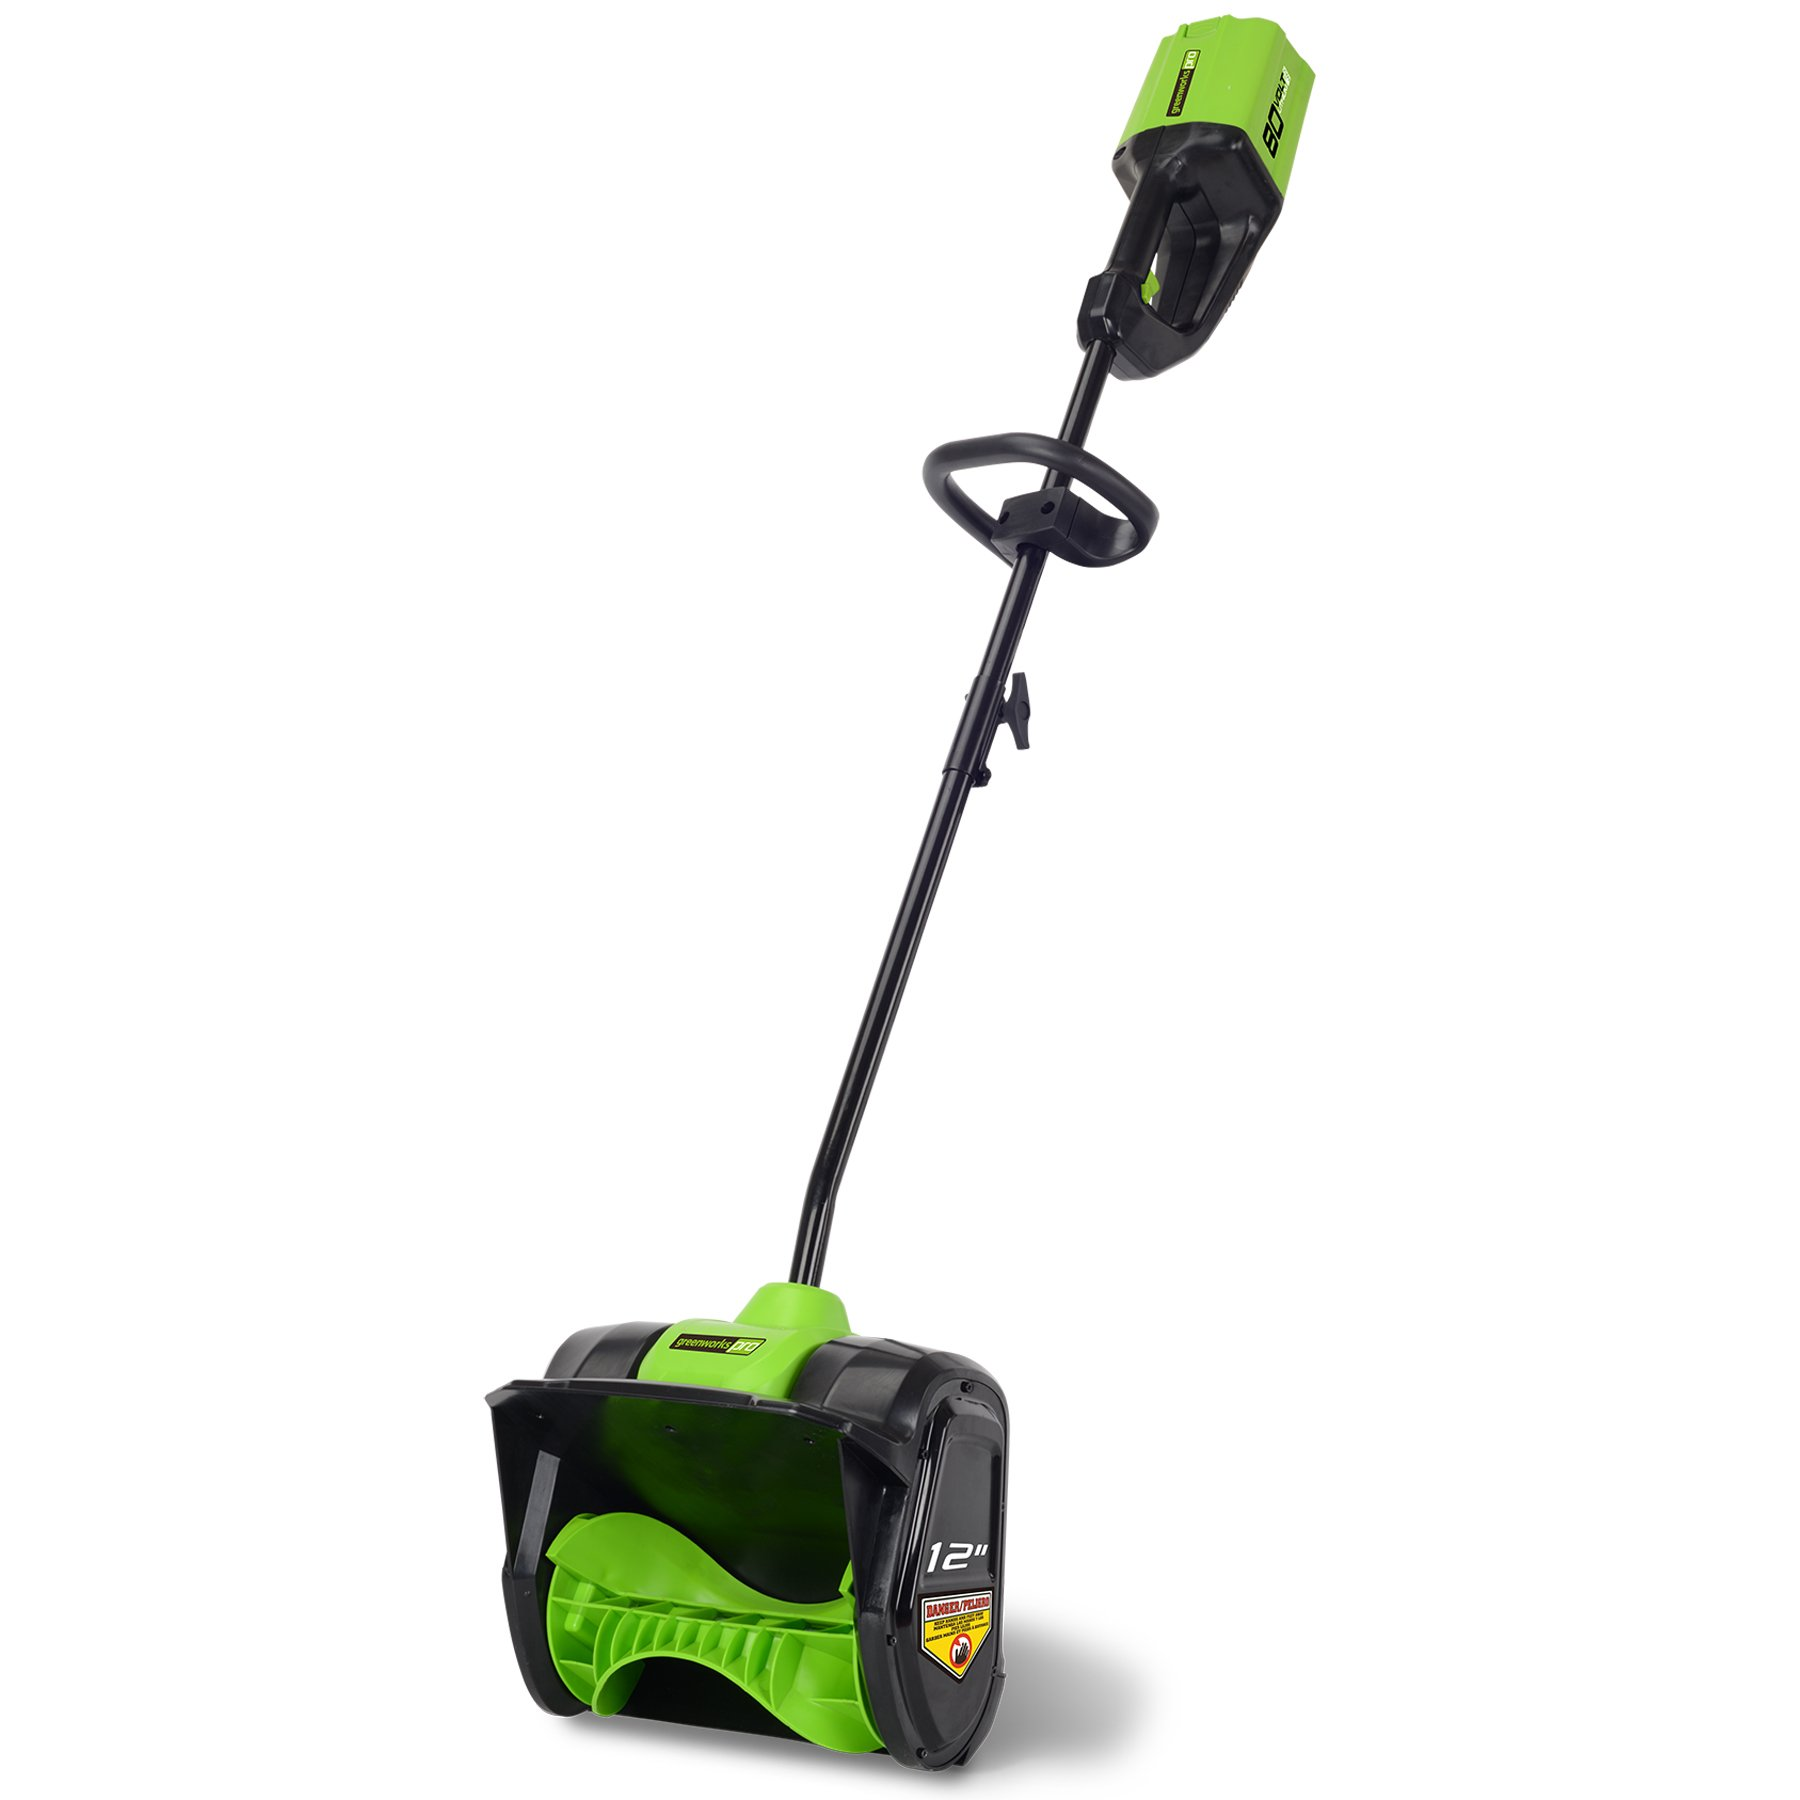 GreenWorks Pro 80V 12-Inch Cordless Snow Shovel, Battery and Charger Not Included 2601202